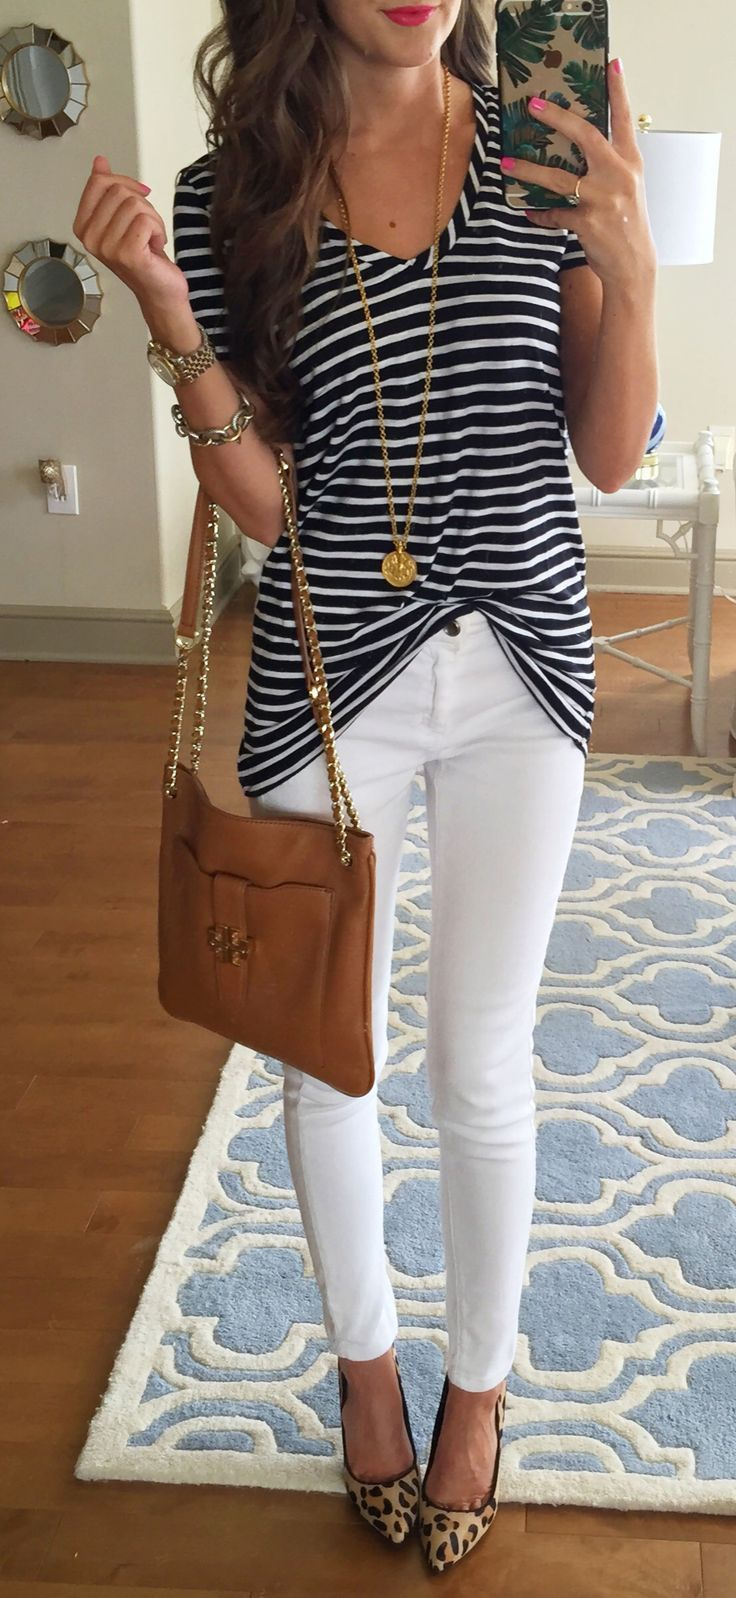 Oufits vestidos kitty pinterest white jeans clothes and stitch